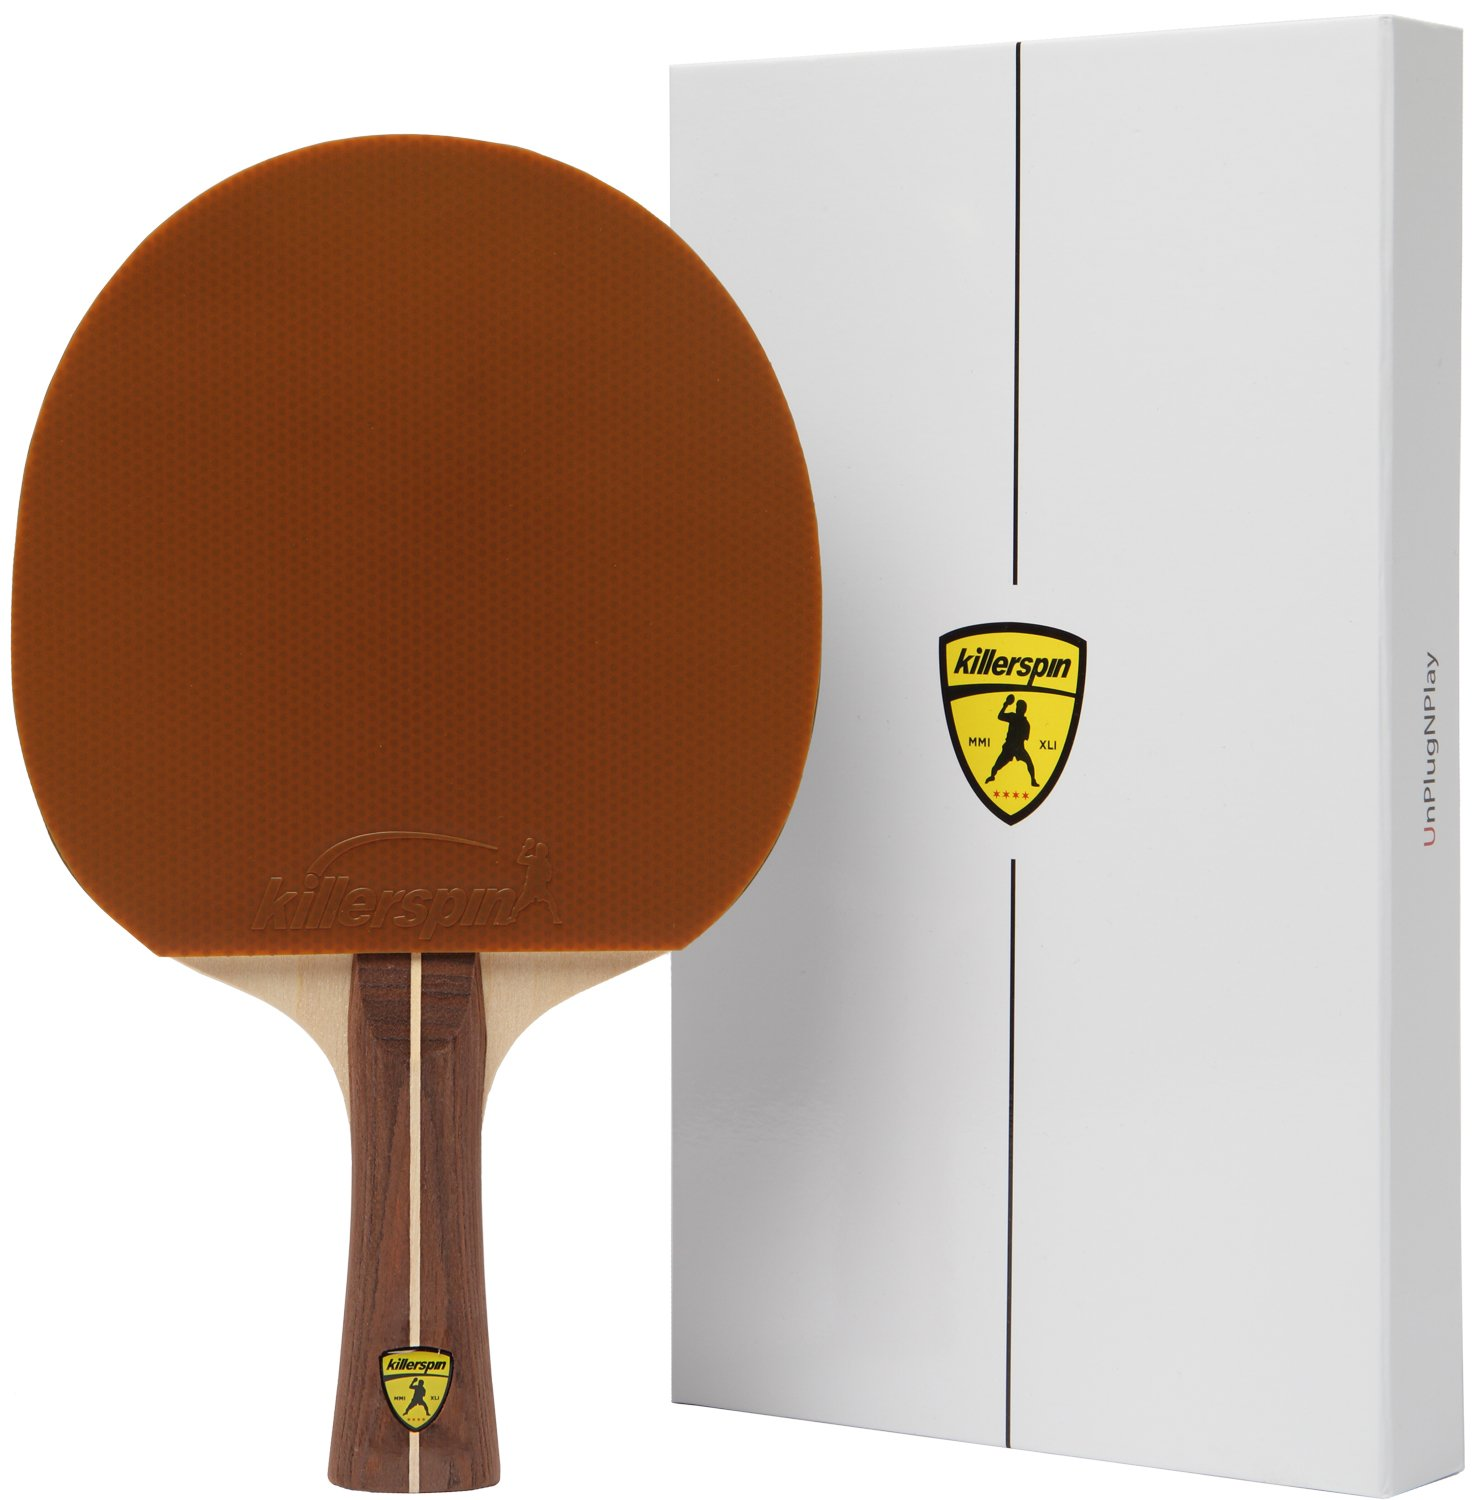 Killerspin JET200 Mocha Table Tennis Paddle - Brown Ping Pong Bat Created for the Needs of Recreational Player with White Memory Book